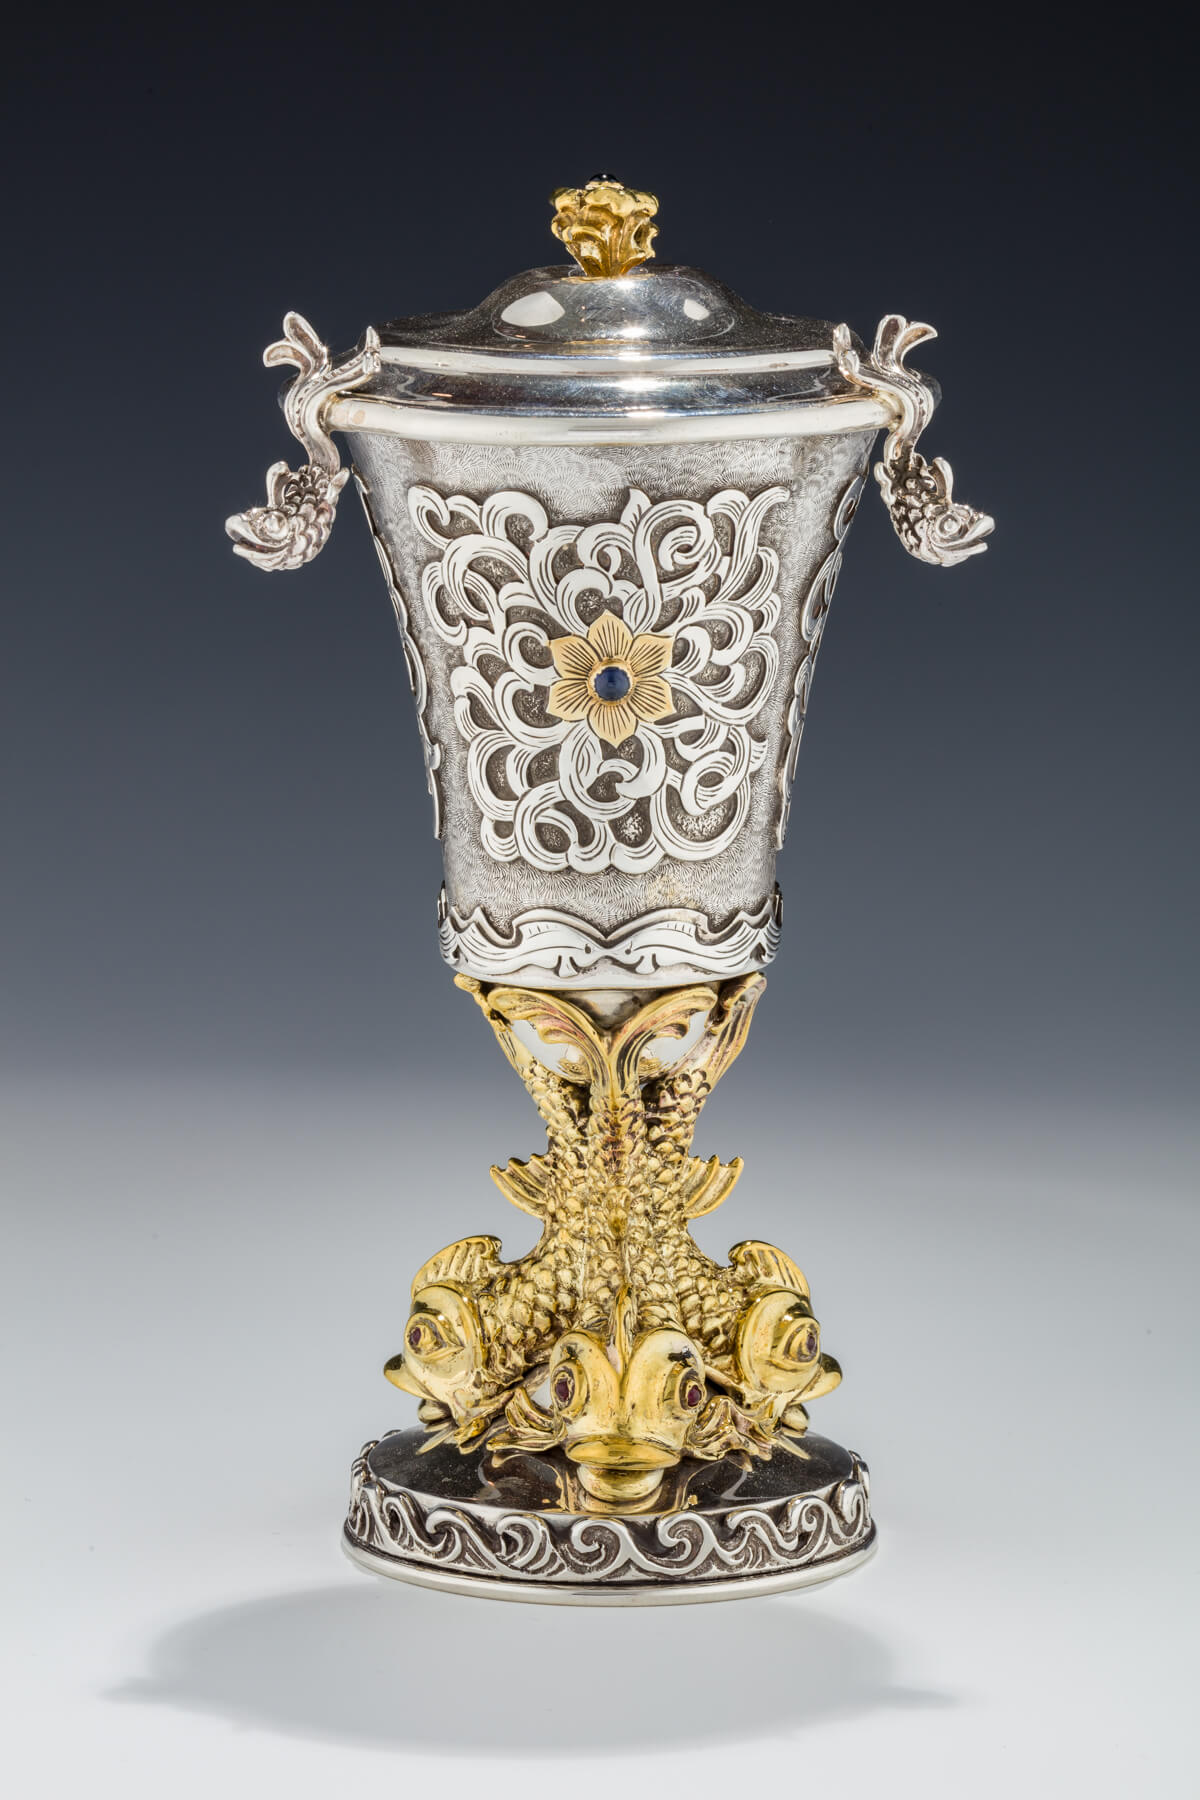 128. A Sterling Silver Covered Kiddush Goblet by Yoel Rivlin